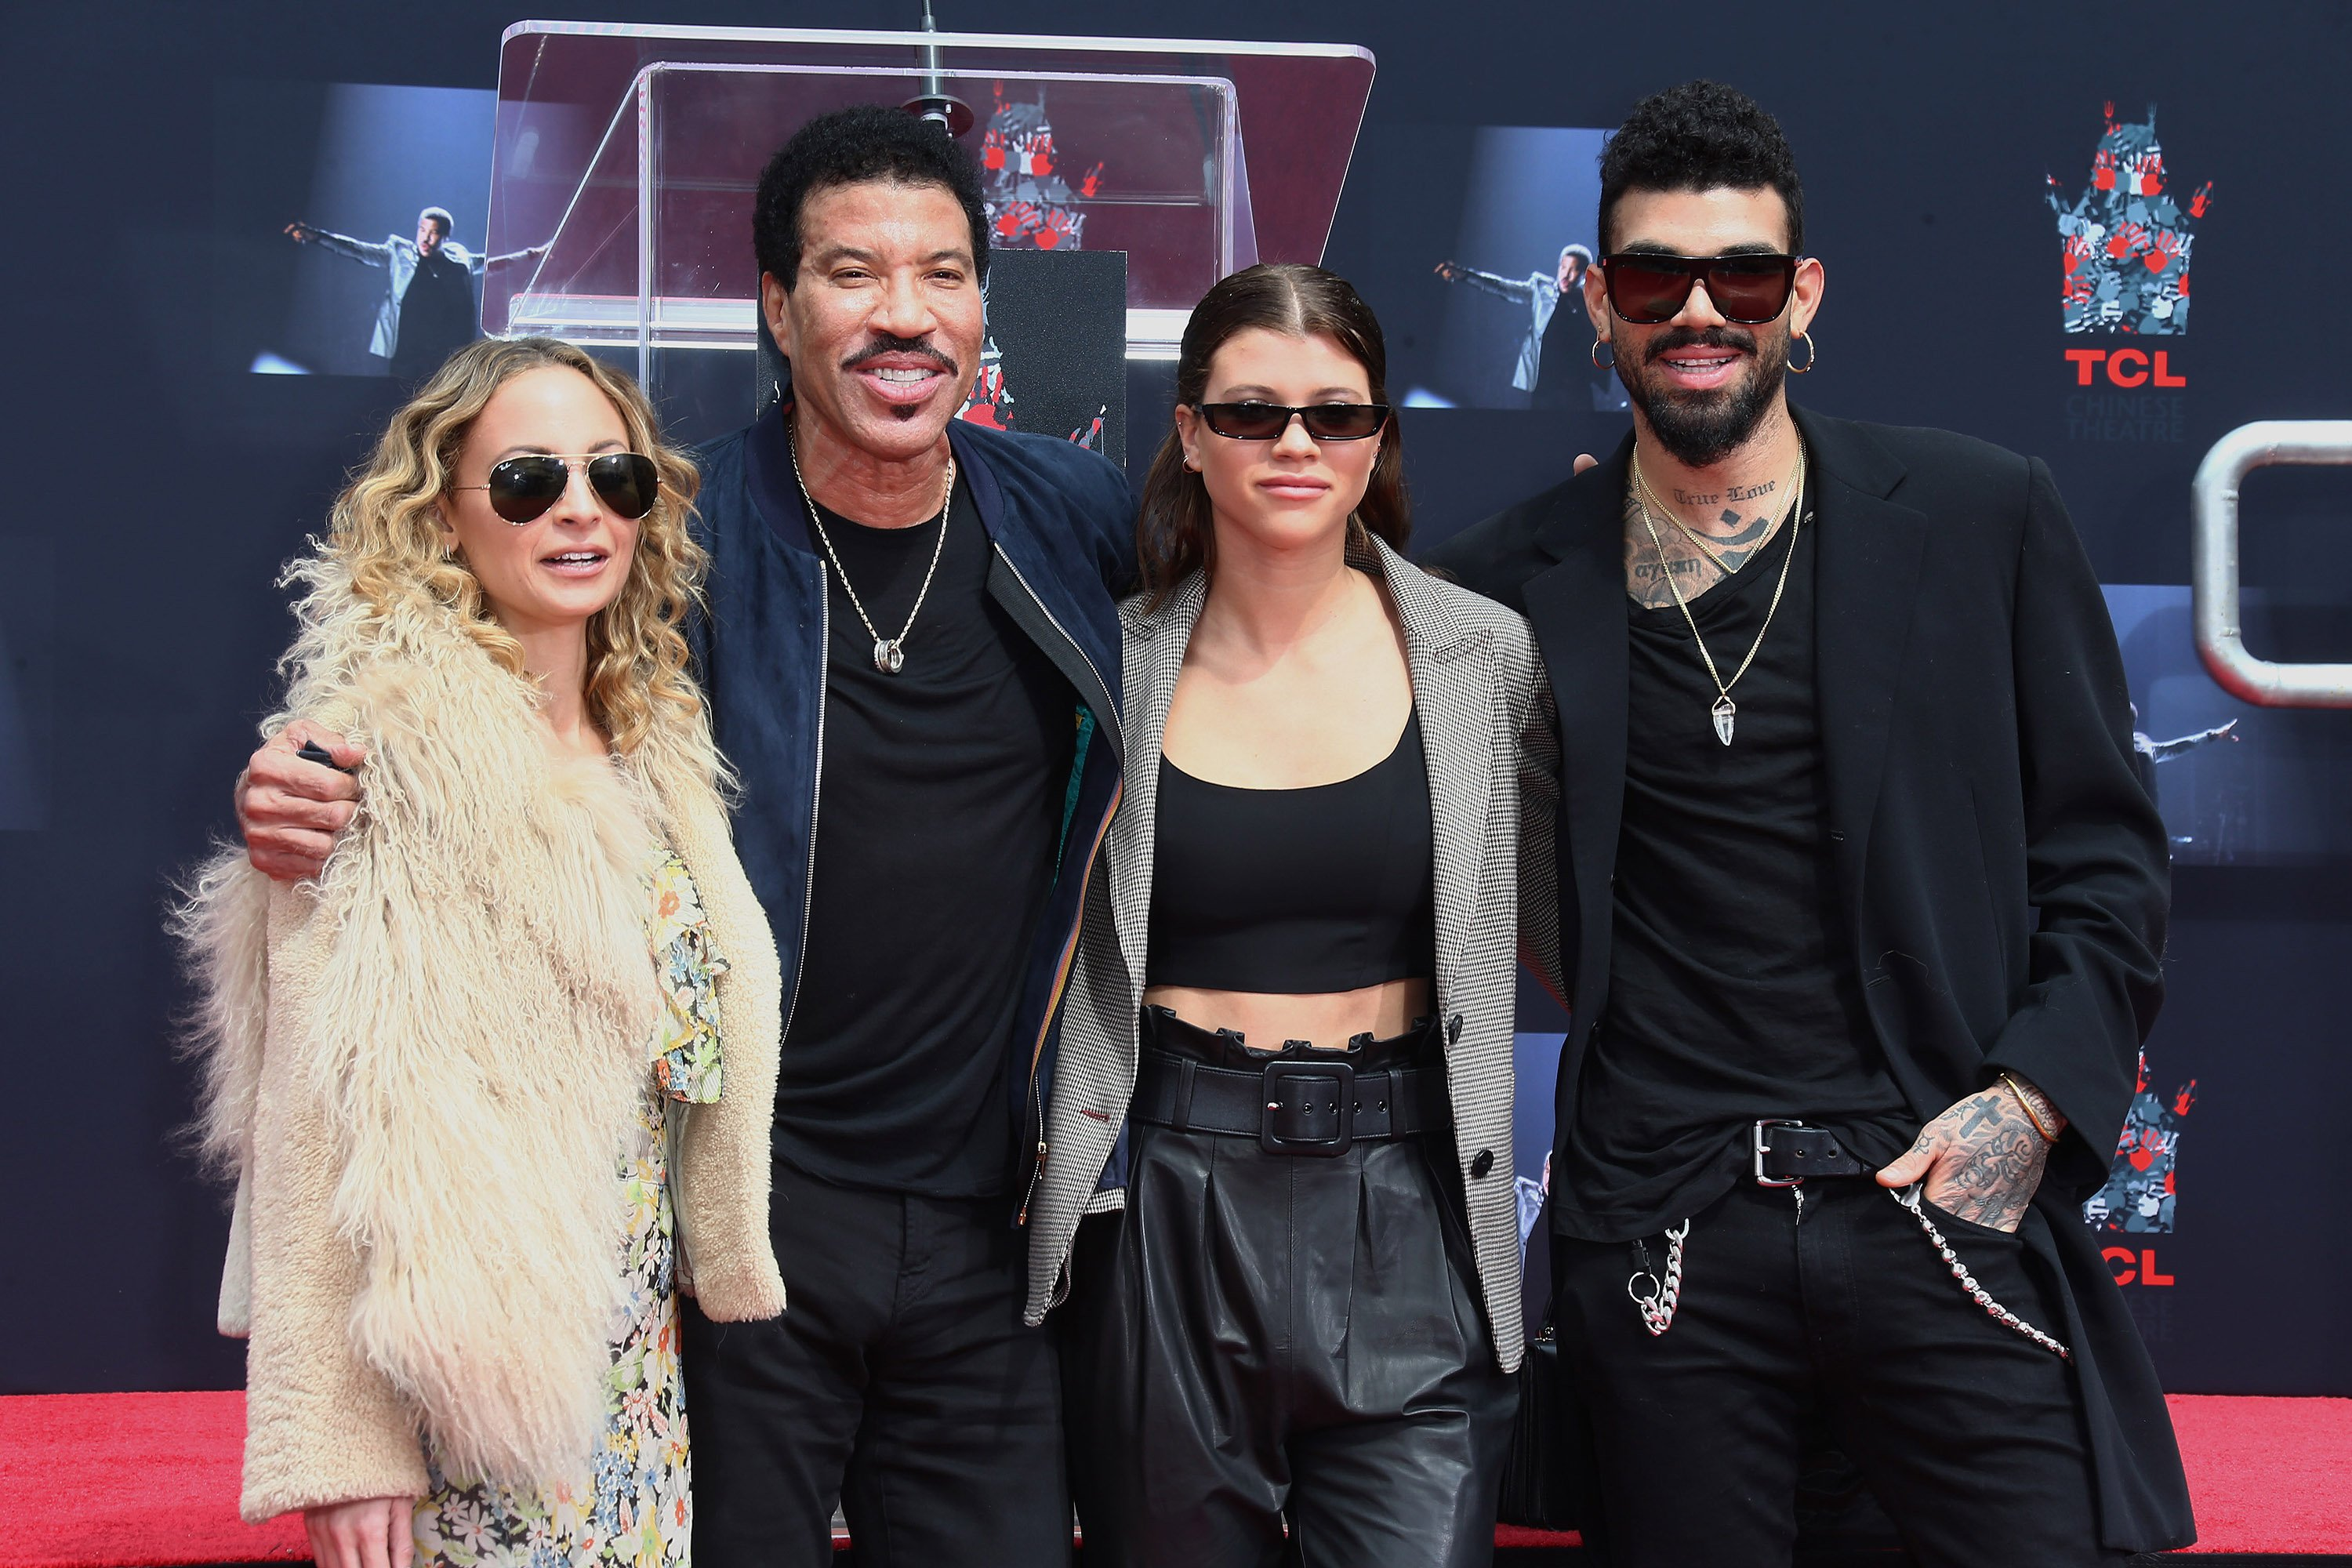 Nicole Richie, Lionel Richie, Sofia Richie and Miles Richie attend the Lionel Richie Hand And Footprint Ceremony at TCL Chinese Theatre on March 7, 2018 in Hollywood, California. | Photo: Getty Images/Global Images of Ukraine